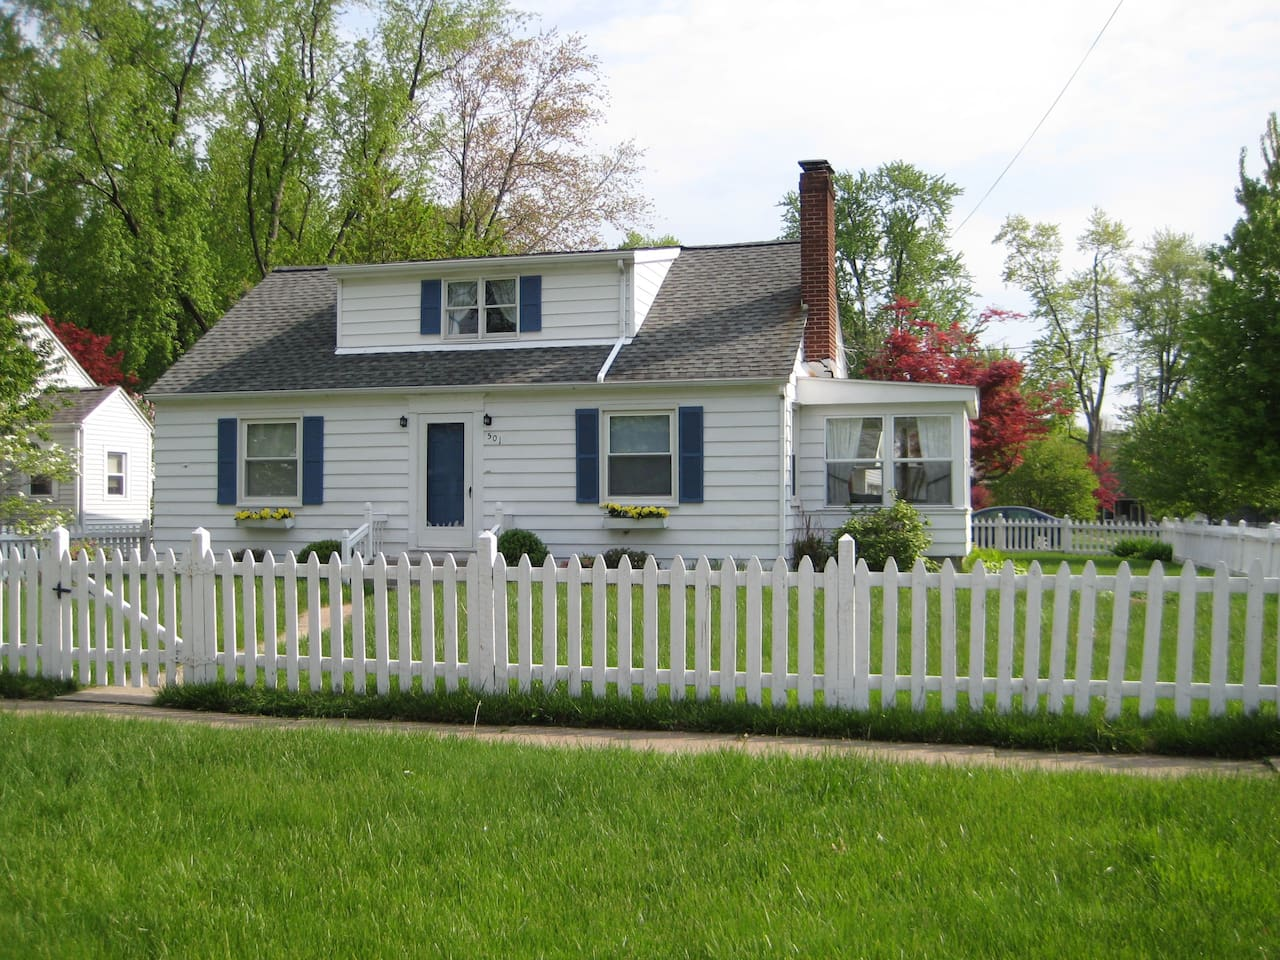 Adorable Professionally Decorated Home.  White Picket Fence Surrounds the Property